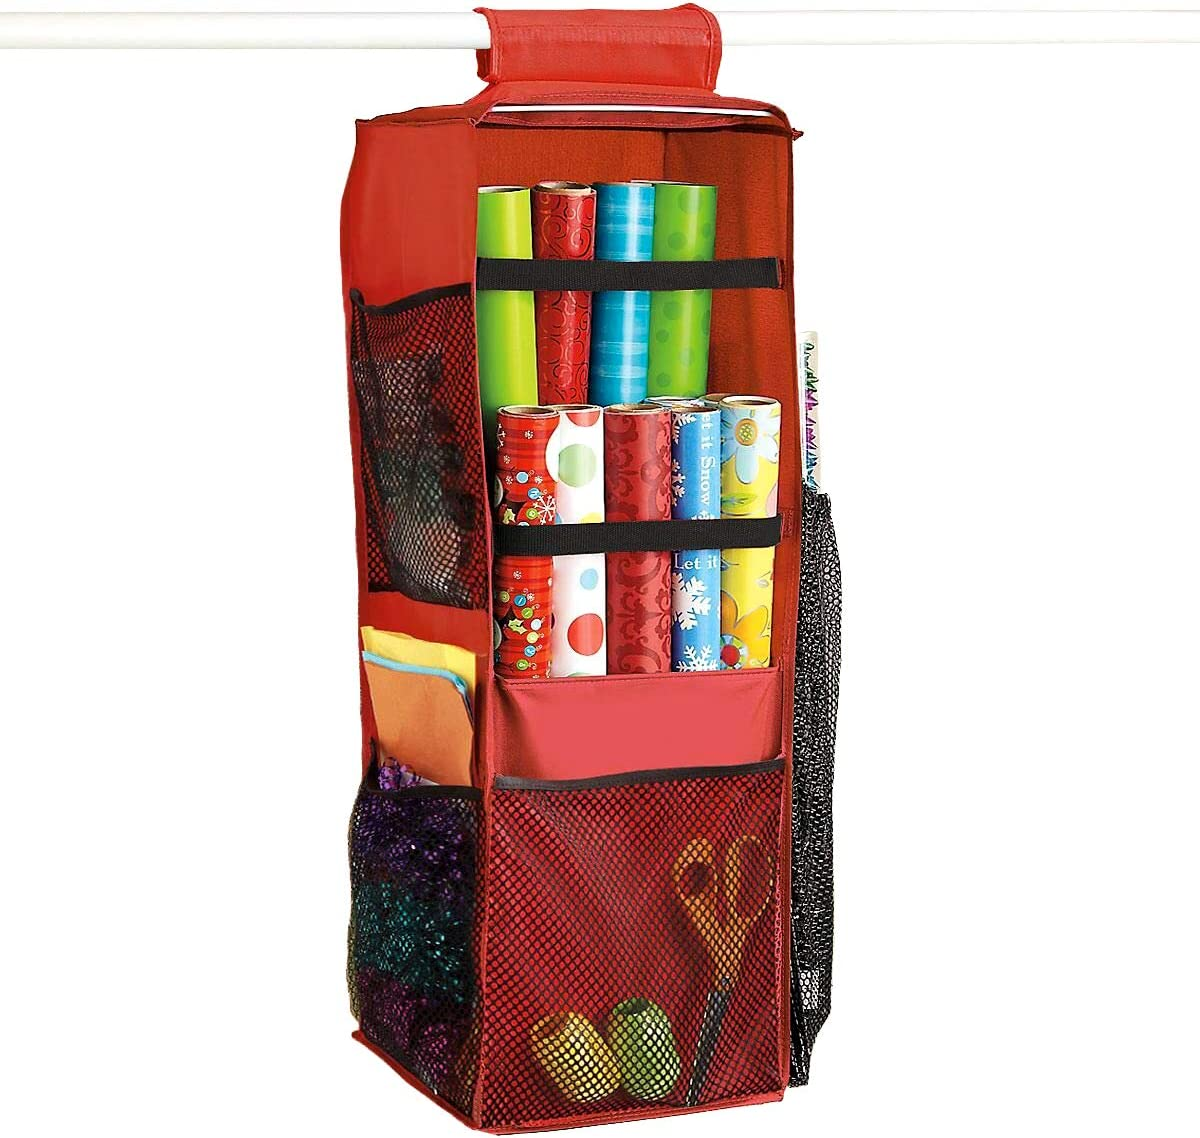 LAMINET Hanging Gift Wrap Max 48% OFF Organizer Super sale period limited - Trim with RED BLACK 10Ã